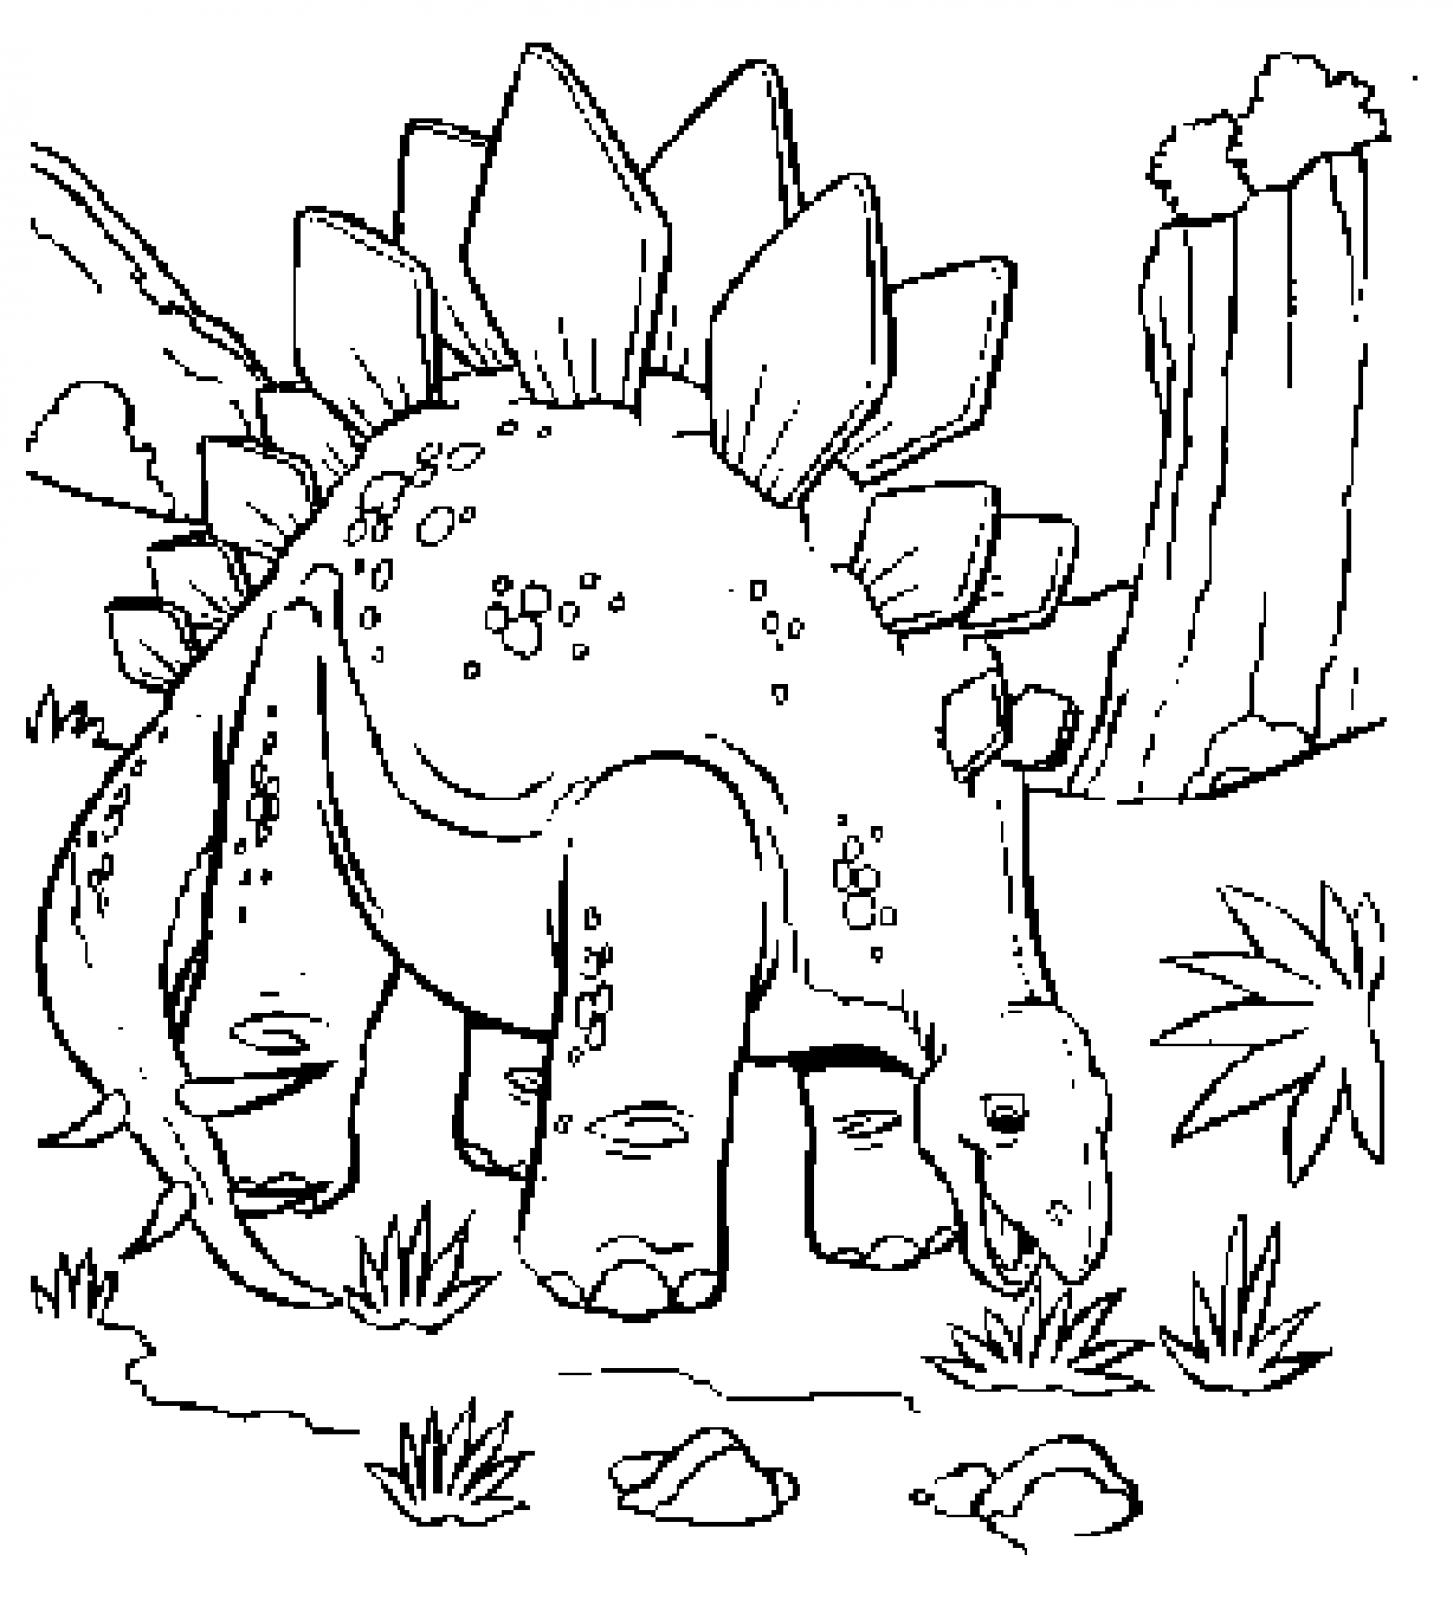 Fresh Dinosaur Coloring Pages Coloring Page Free Coloring Book Printable Of Dinosaur Clipart Coloring Page Triceratop Pencil and In Color Gallery